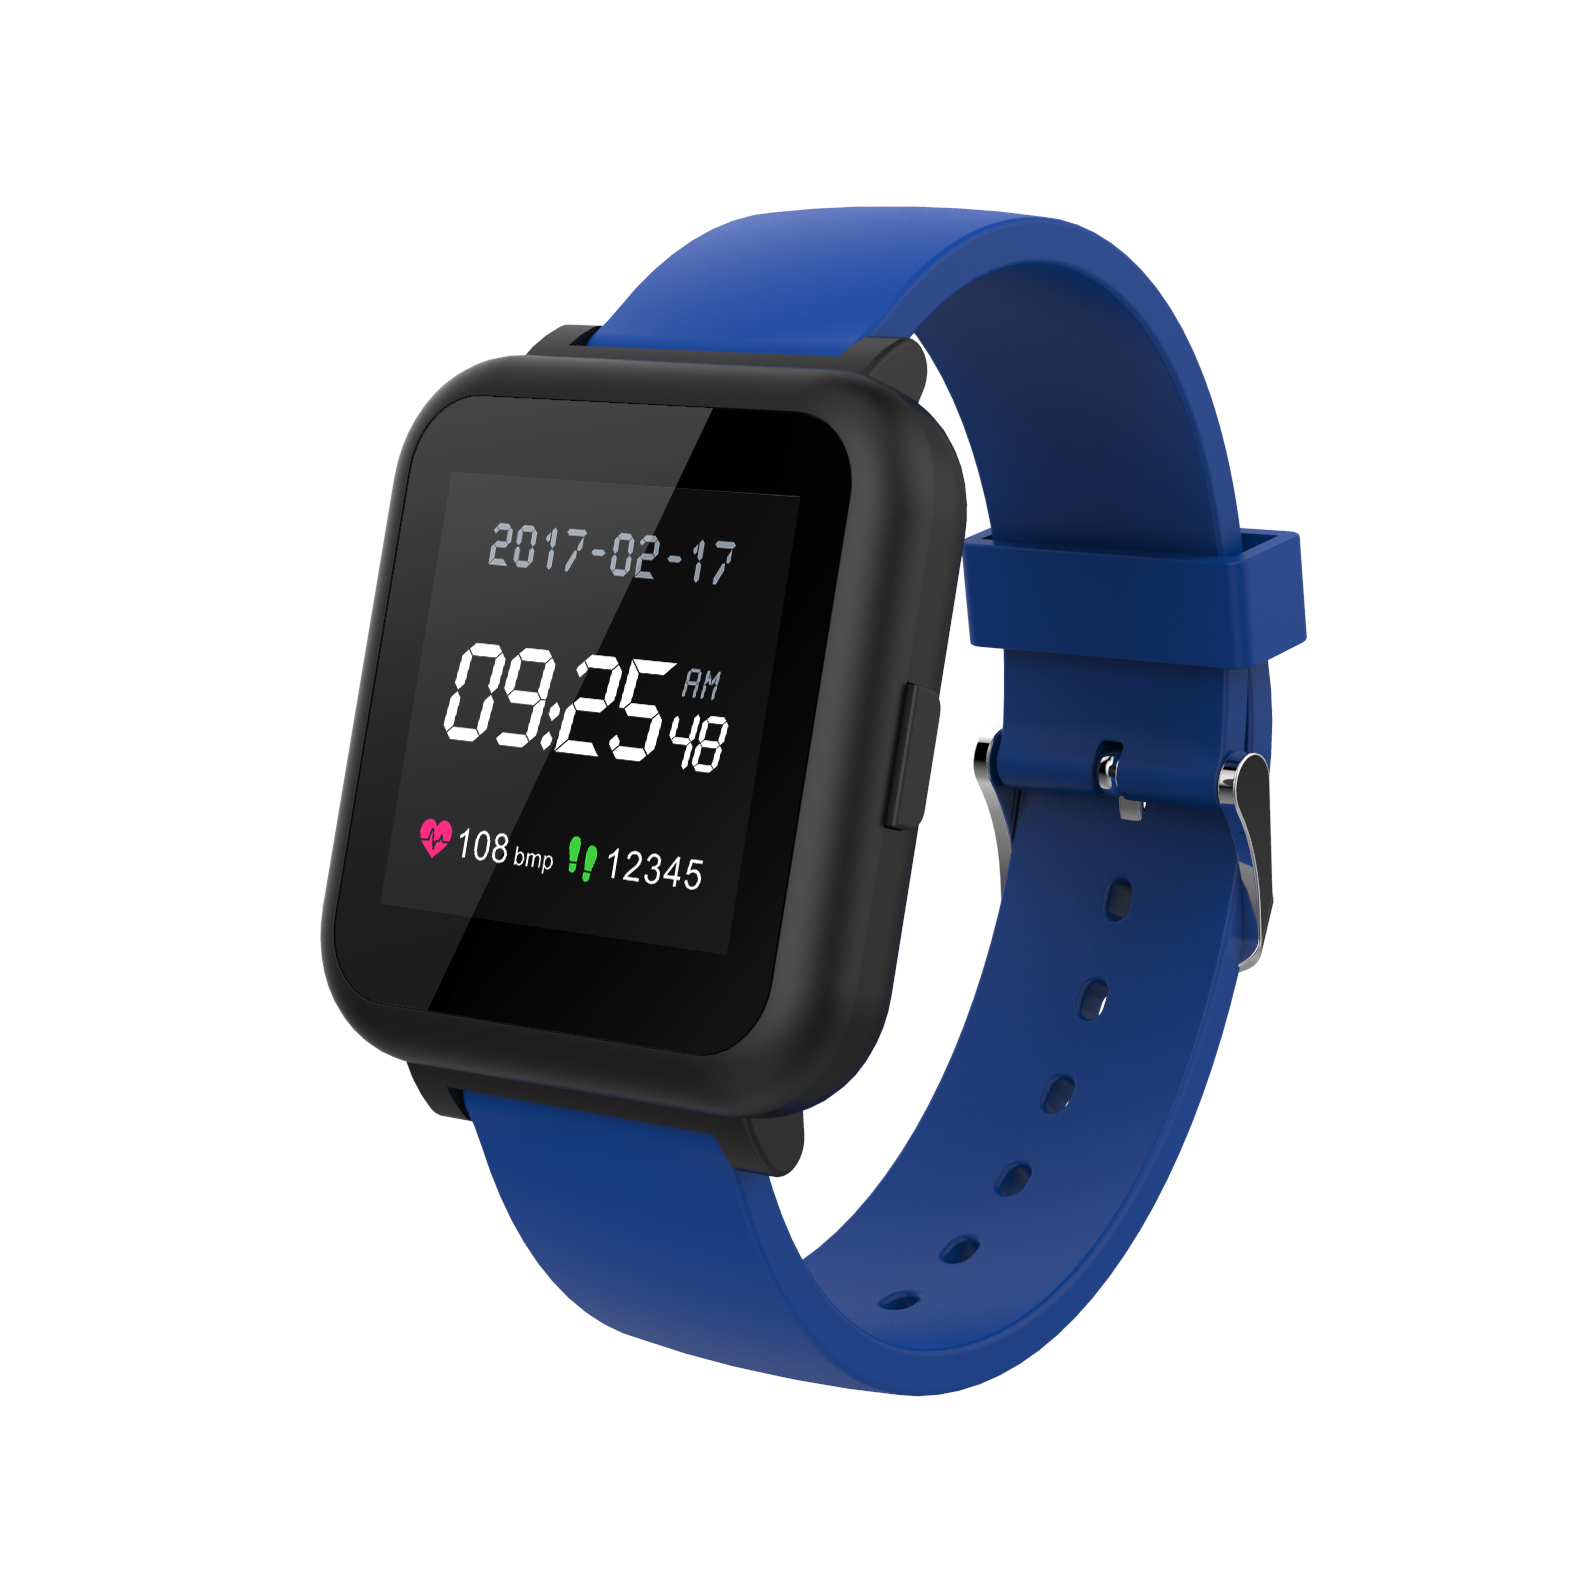 RBX Active Smartwatch Tracker with Heart Rate Monitor Tracker